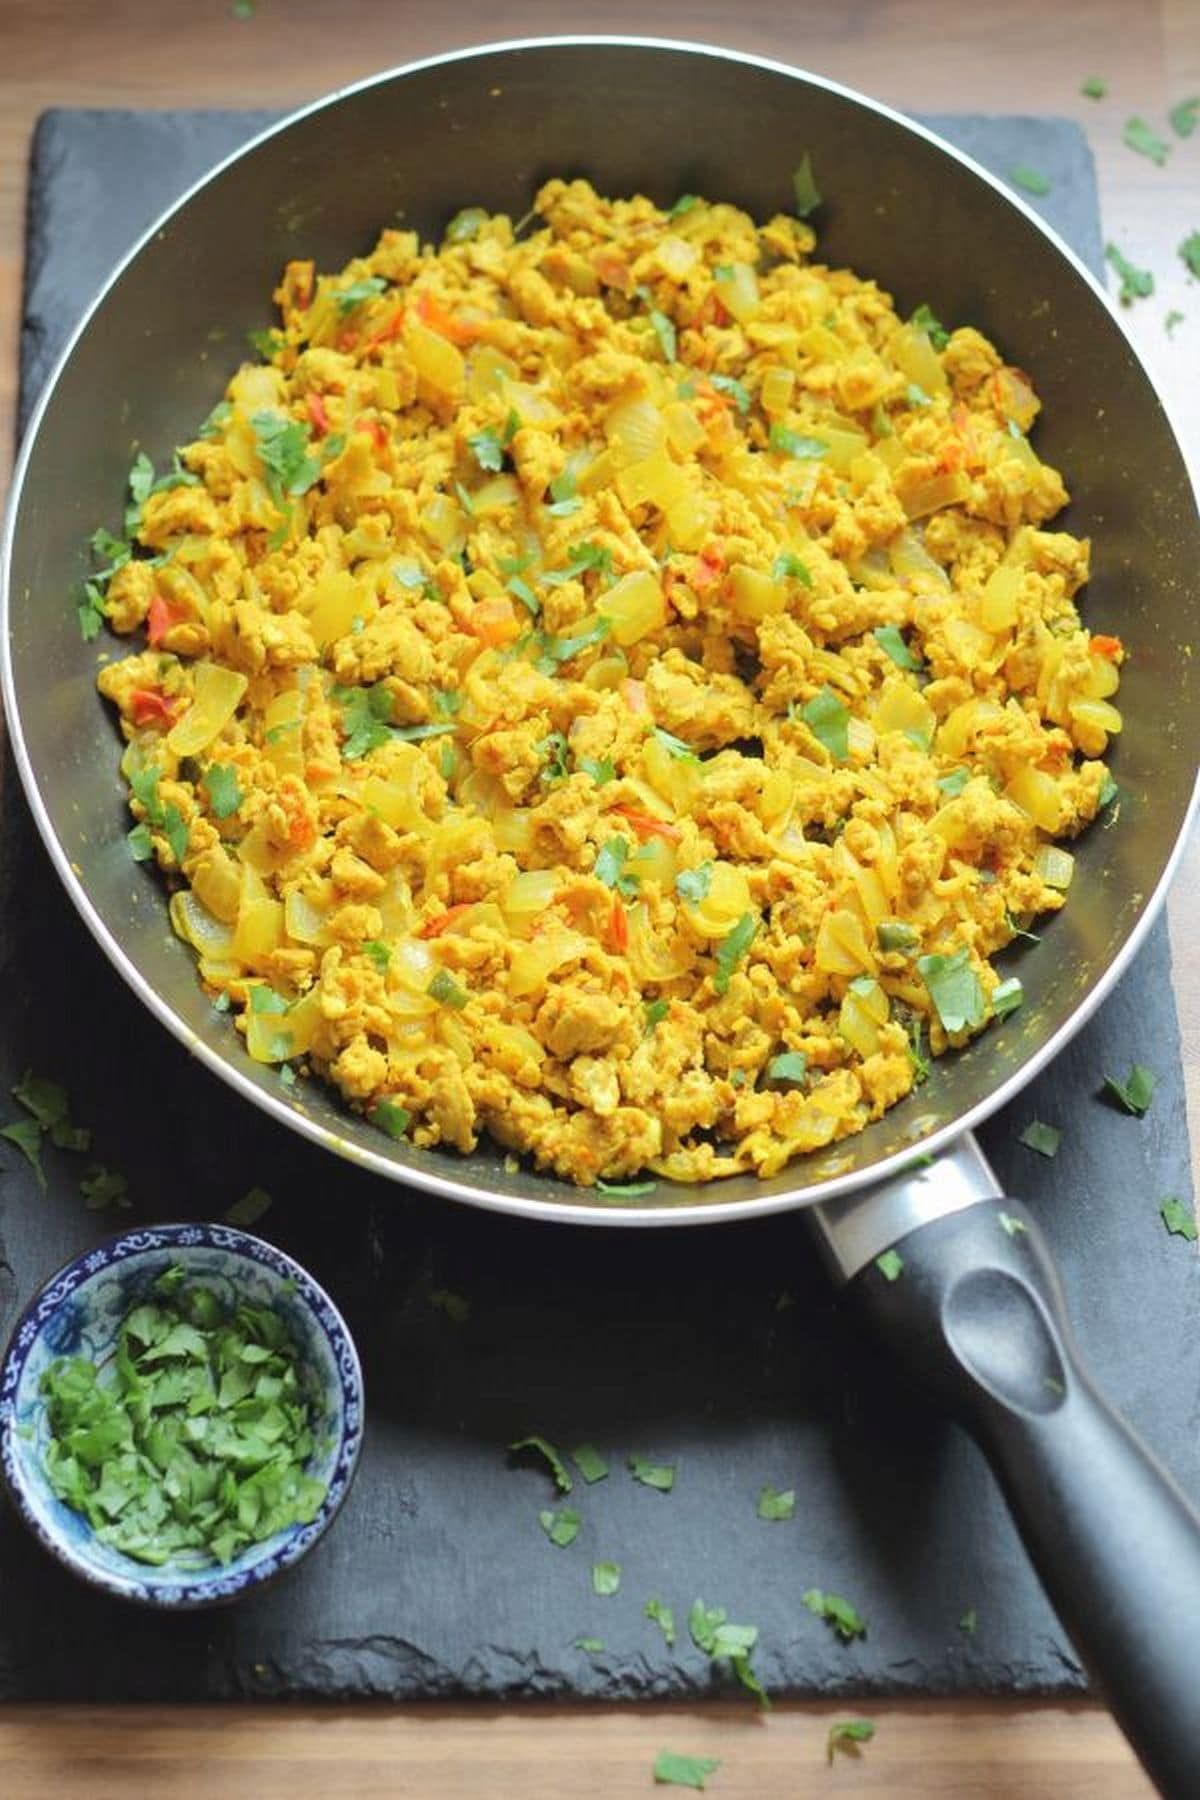 This is Indian scrambled eggs made the healthy way! You will be amazed that just a few tweaks and spices added to a traditional scrambled egg recipe can produce this healthy, top weekend breakfast recipe. Tantalise the taste buds, and try something different. It's nearly a curry for breakfast! #neilshealthymeals #Indianeggsrecipe #Indianbreakfast #Indianeggs #scrambledeggs #akoori #andabhurji #vegetarian #glutenfree